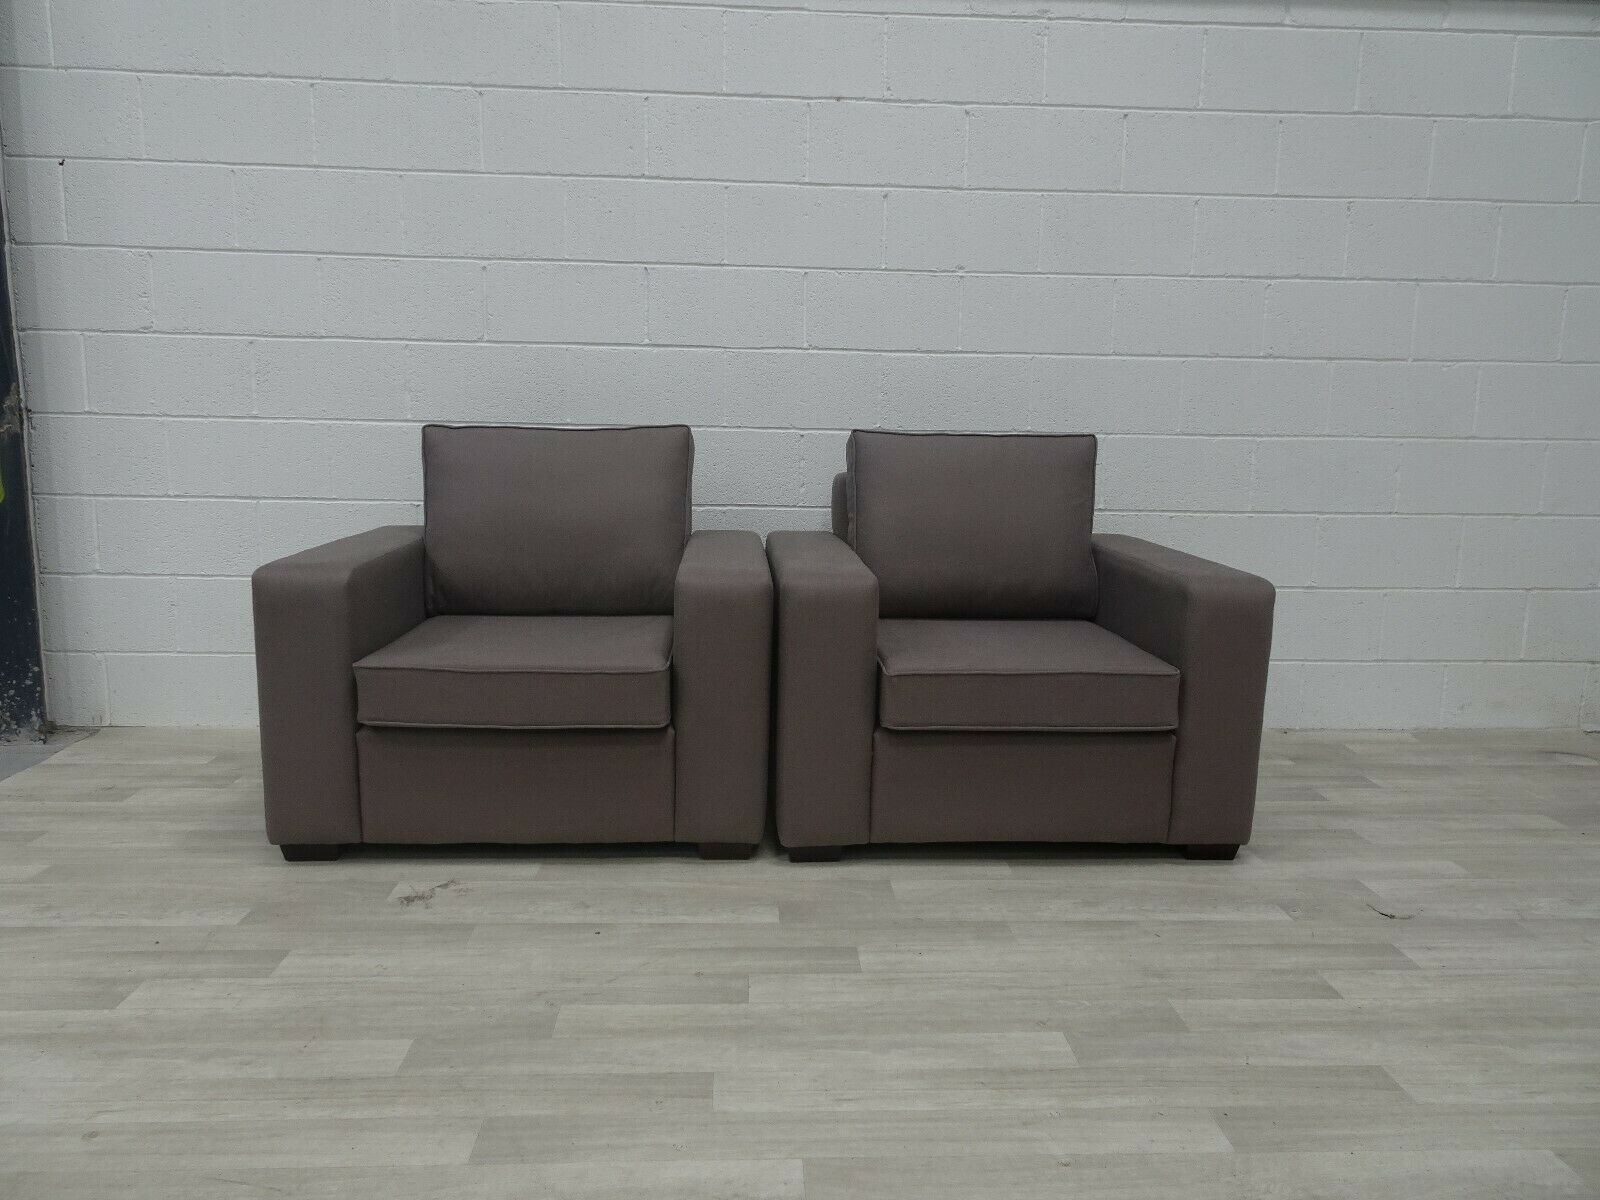 Picture of: Stunning Bespoke Symphony Pair Of Extra Wide Armchairs In Grey Linen Vinterior